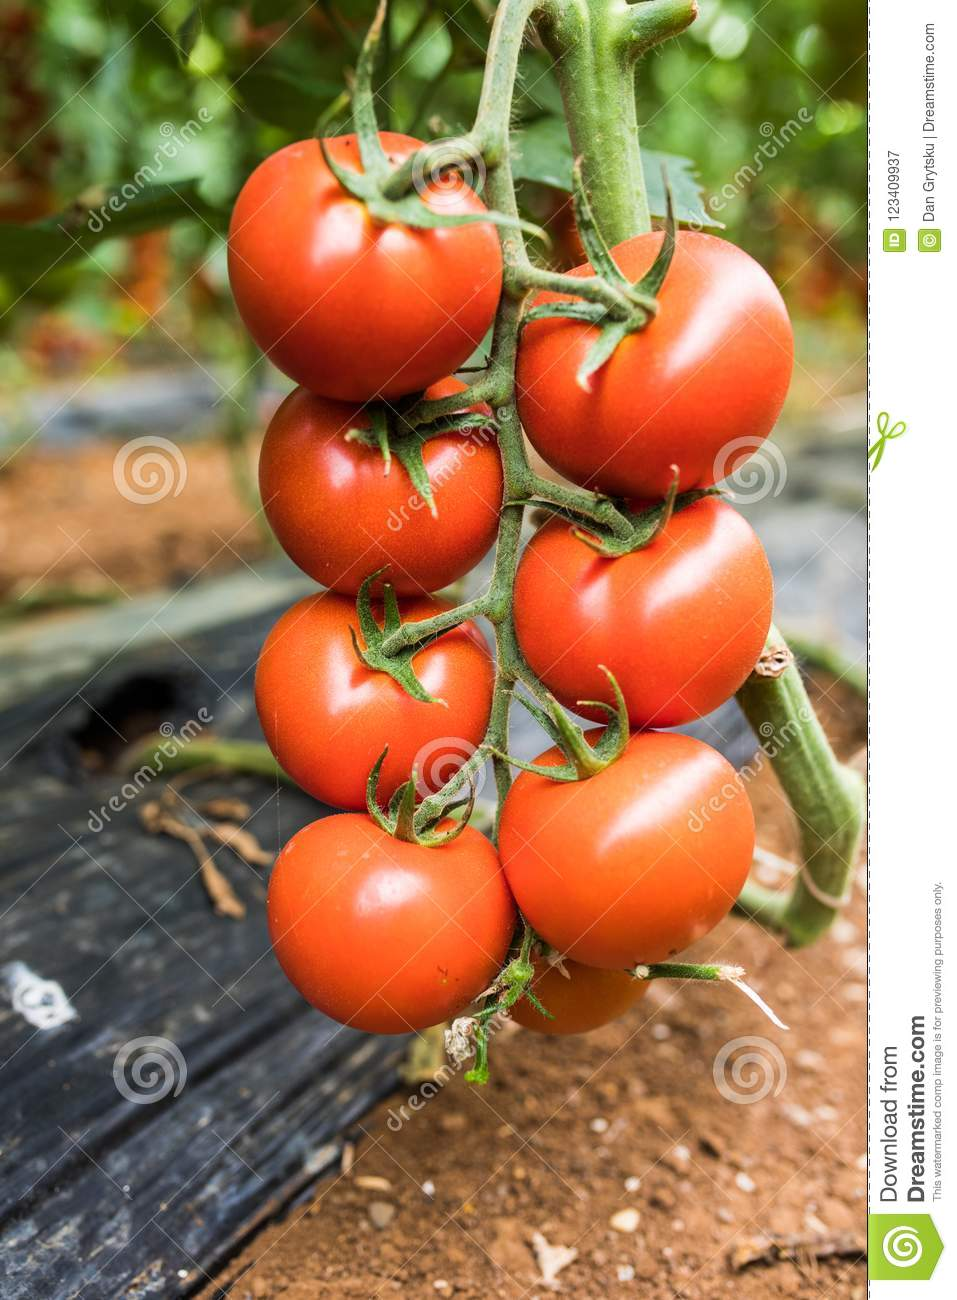 Big ripe red tomato fruits hanging on the branch in greenhouse in summertime, close-up